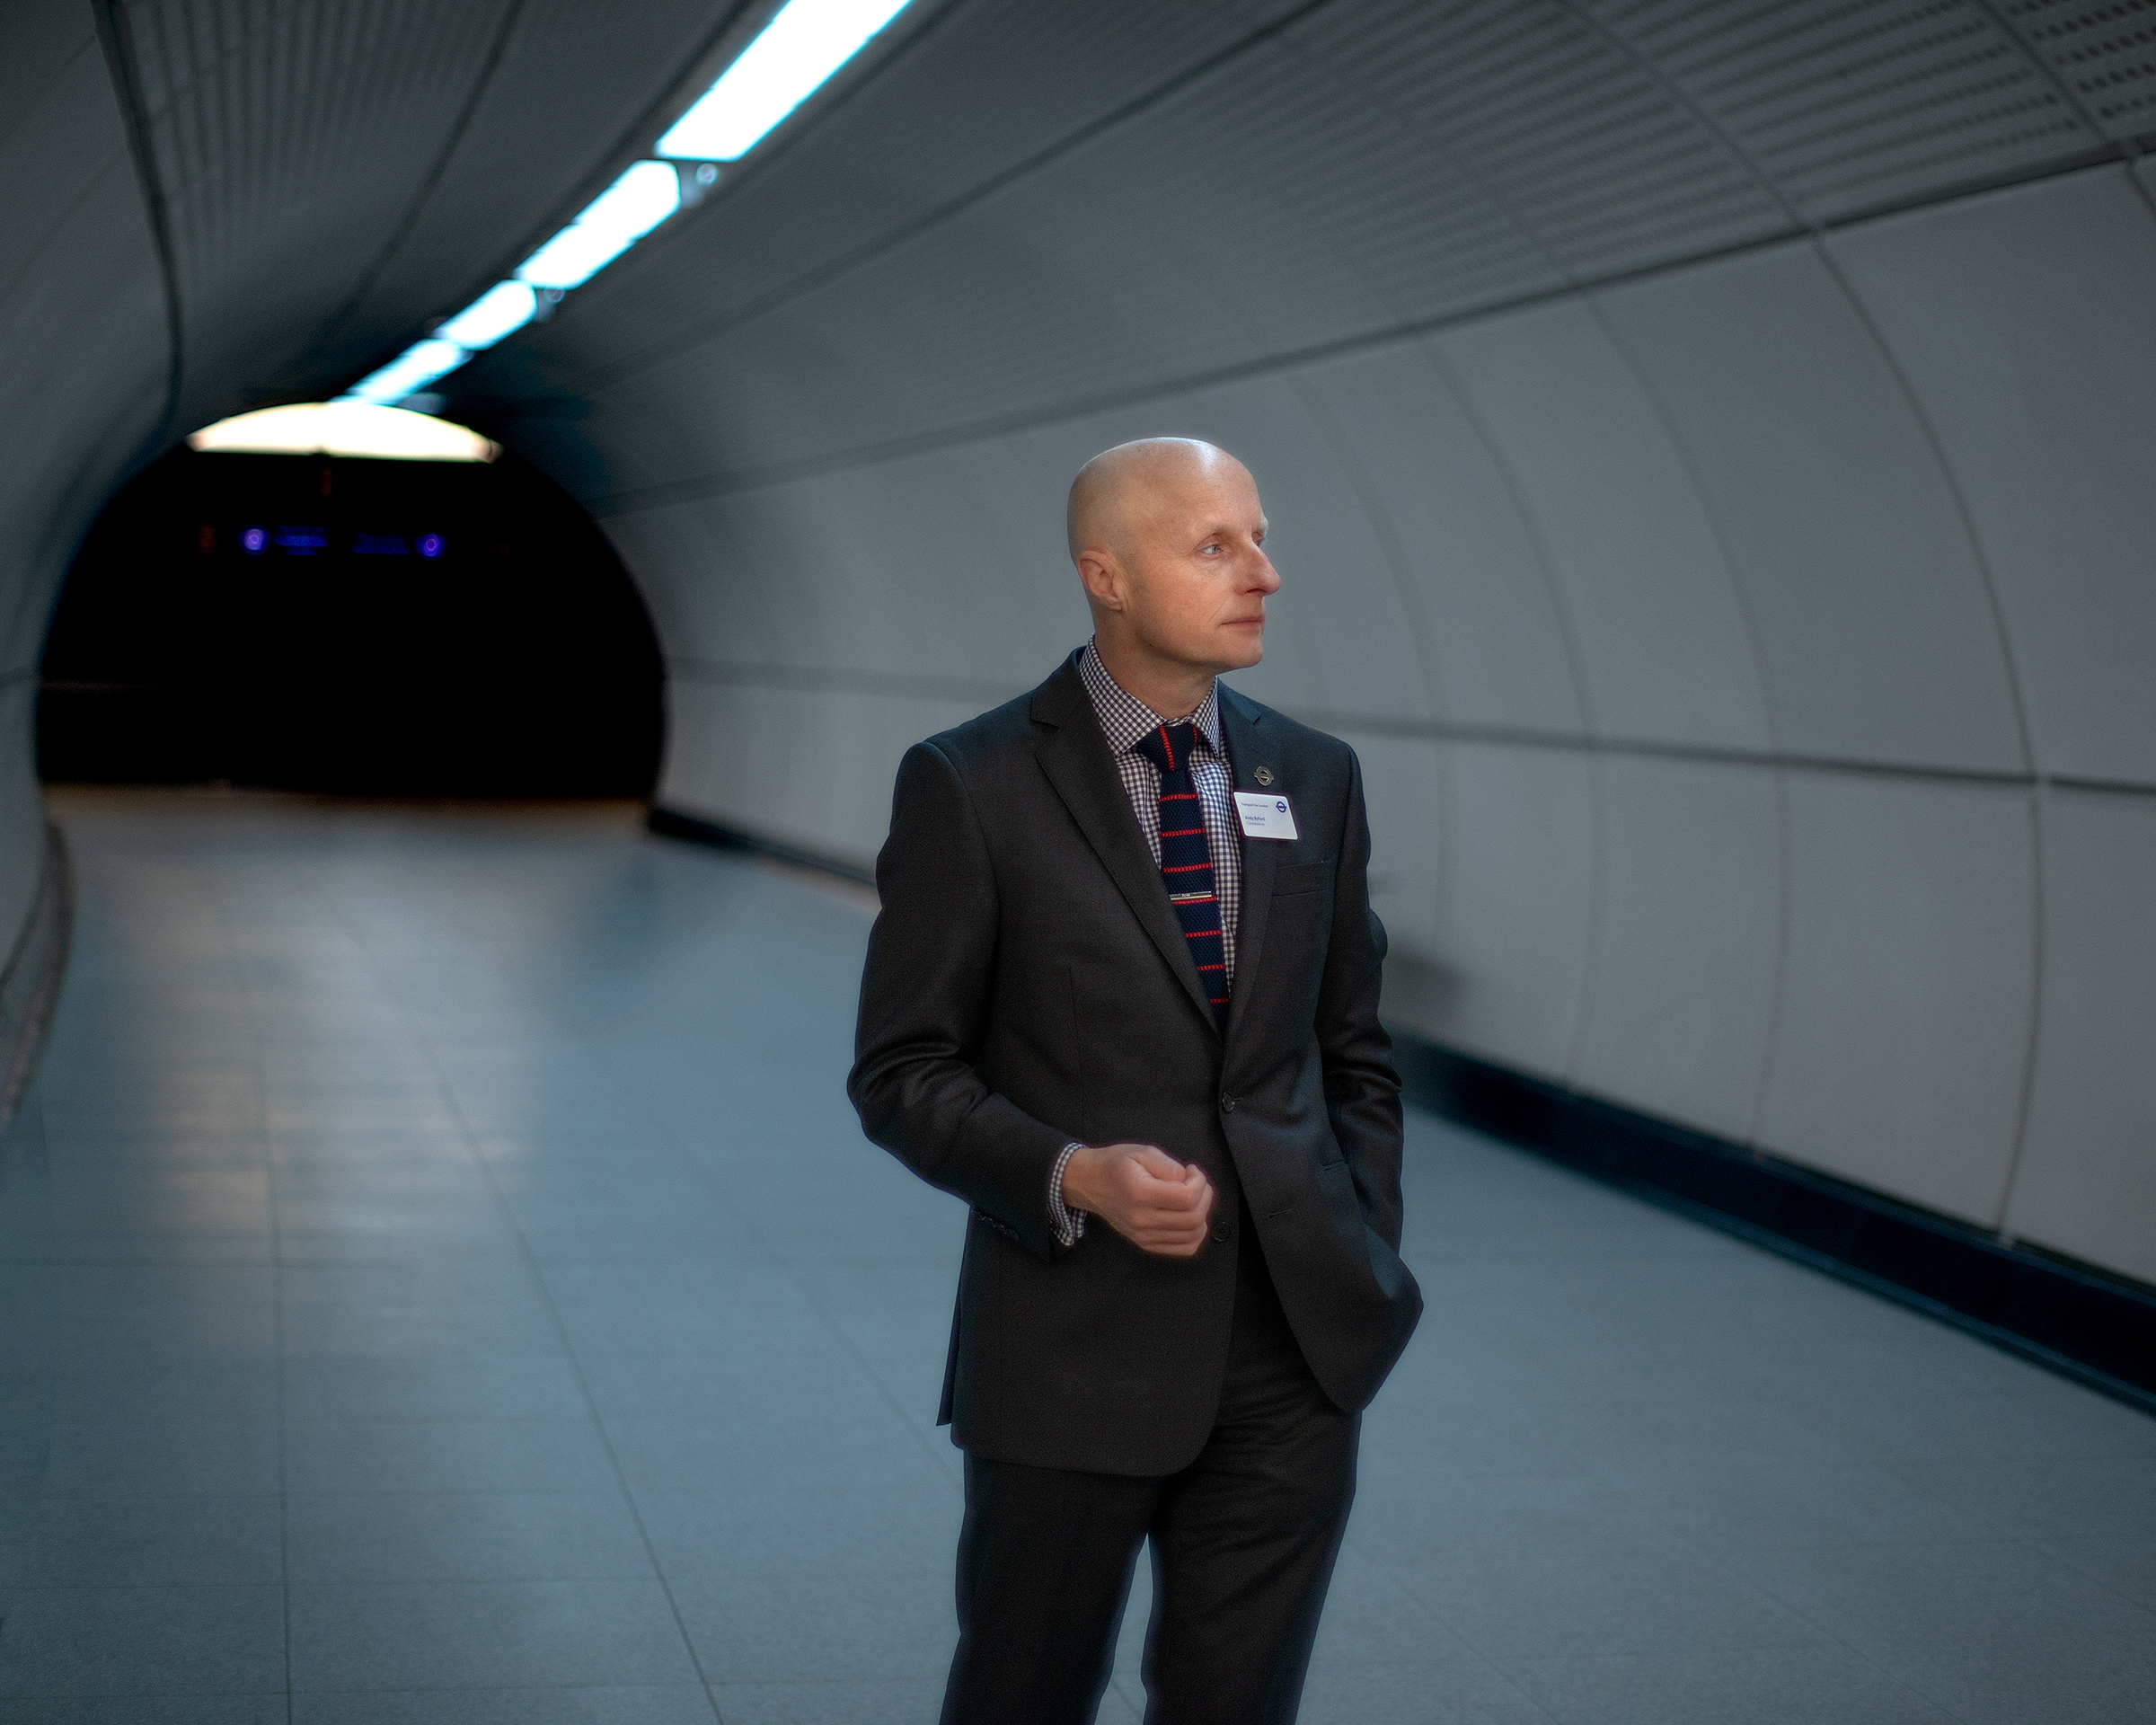 Byford's first job was as a station foreman for Transport for London; now he's the commissioner